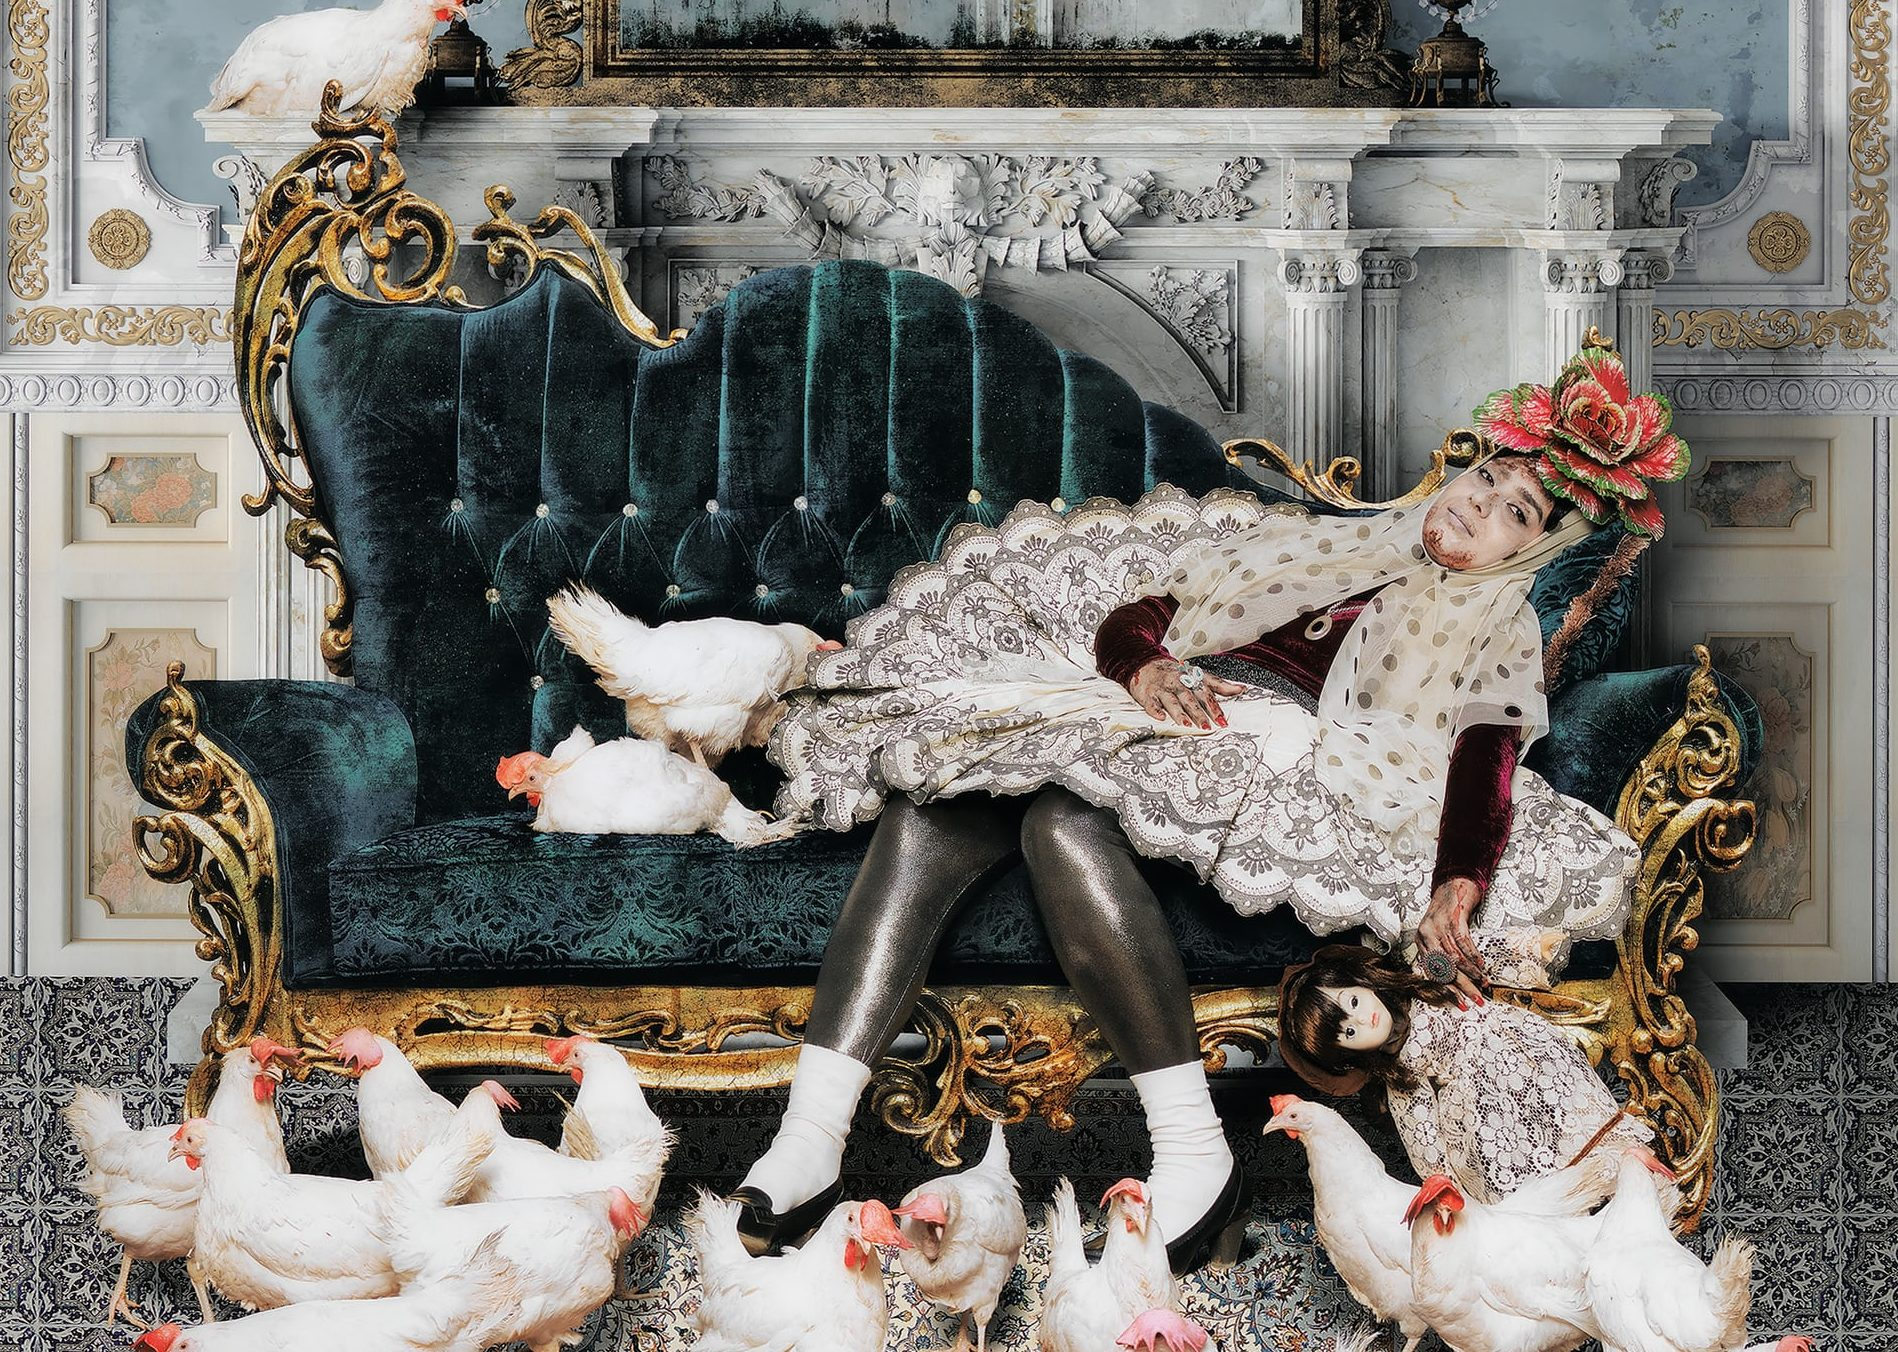 Photograph created by Siamak Filizadeh of a woman reclining on an ornate love seat with chickens pecking the floor in front of her.